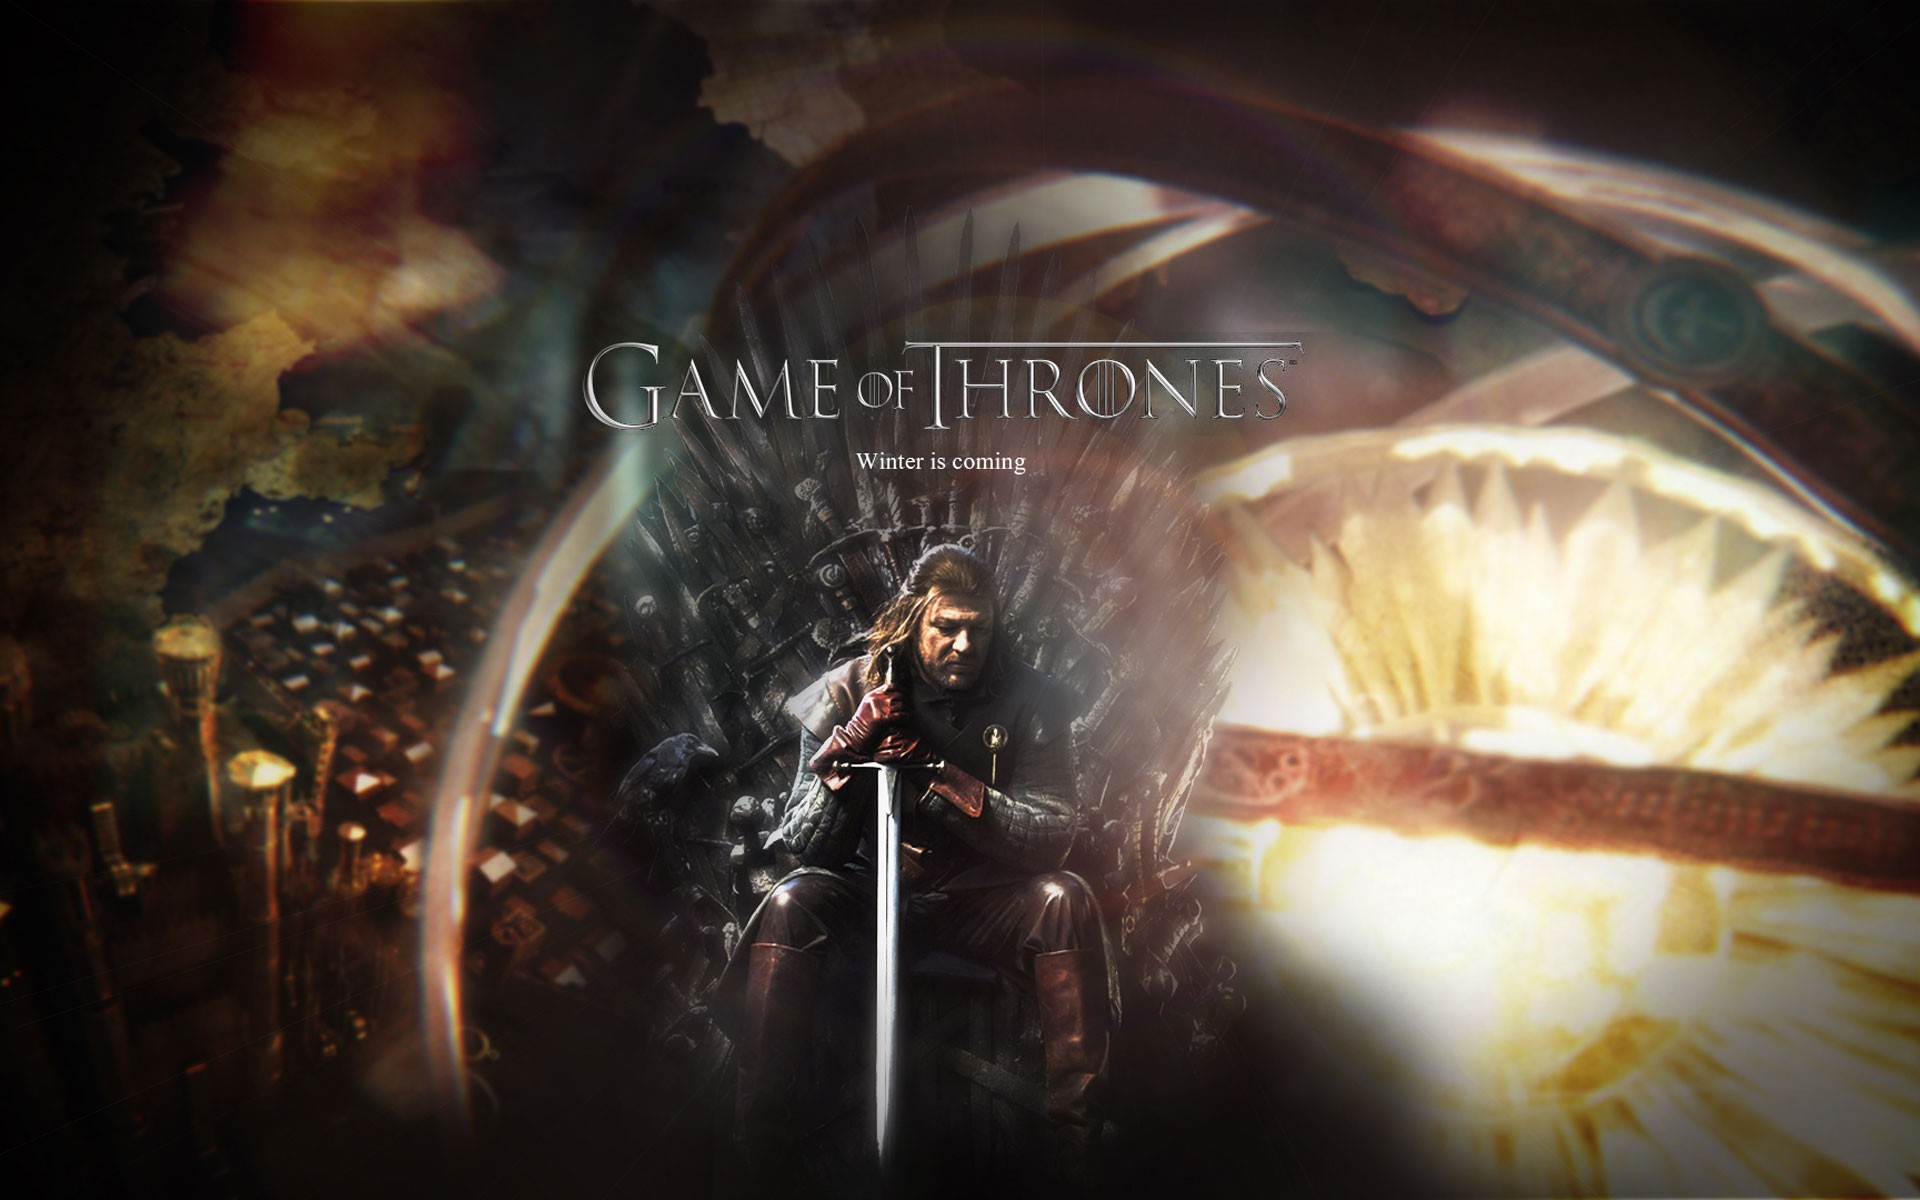 Fantasy art throne game of thrones a song of ice and fire tv series 1920x1200